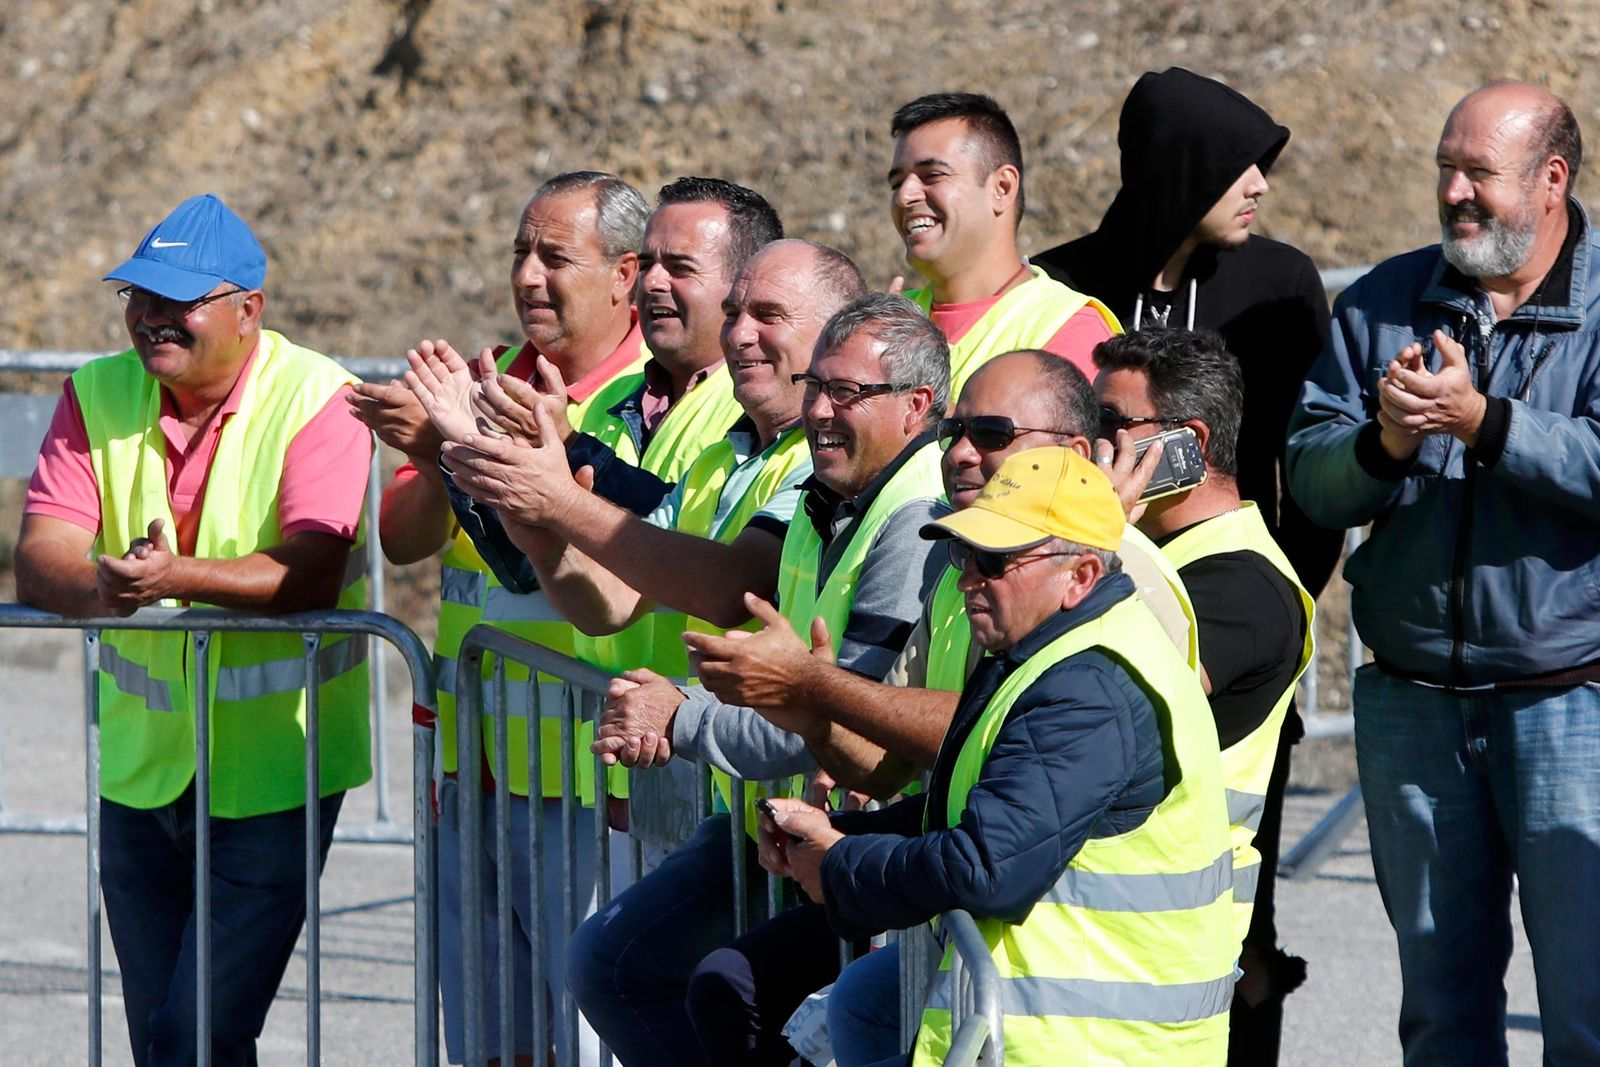 Tanker truck drivers on strike applaud a fellow driver leaving a fuel depot in Aveiras, outside Lisbon, Monday, Aug. 12, 2019. (AP Photo/Armando Franca)